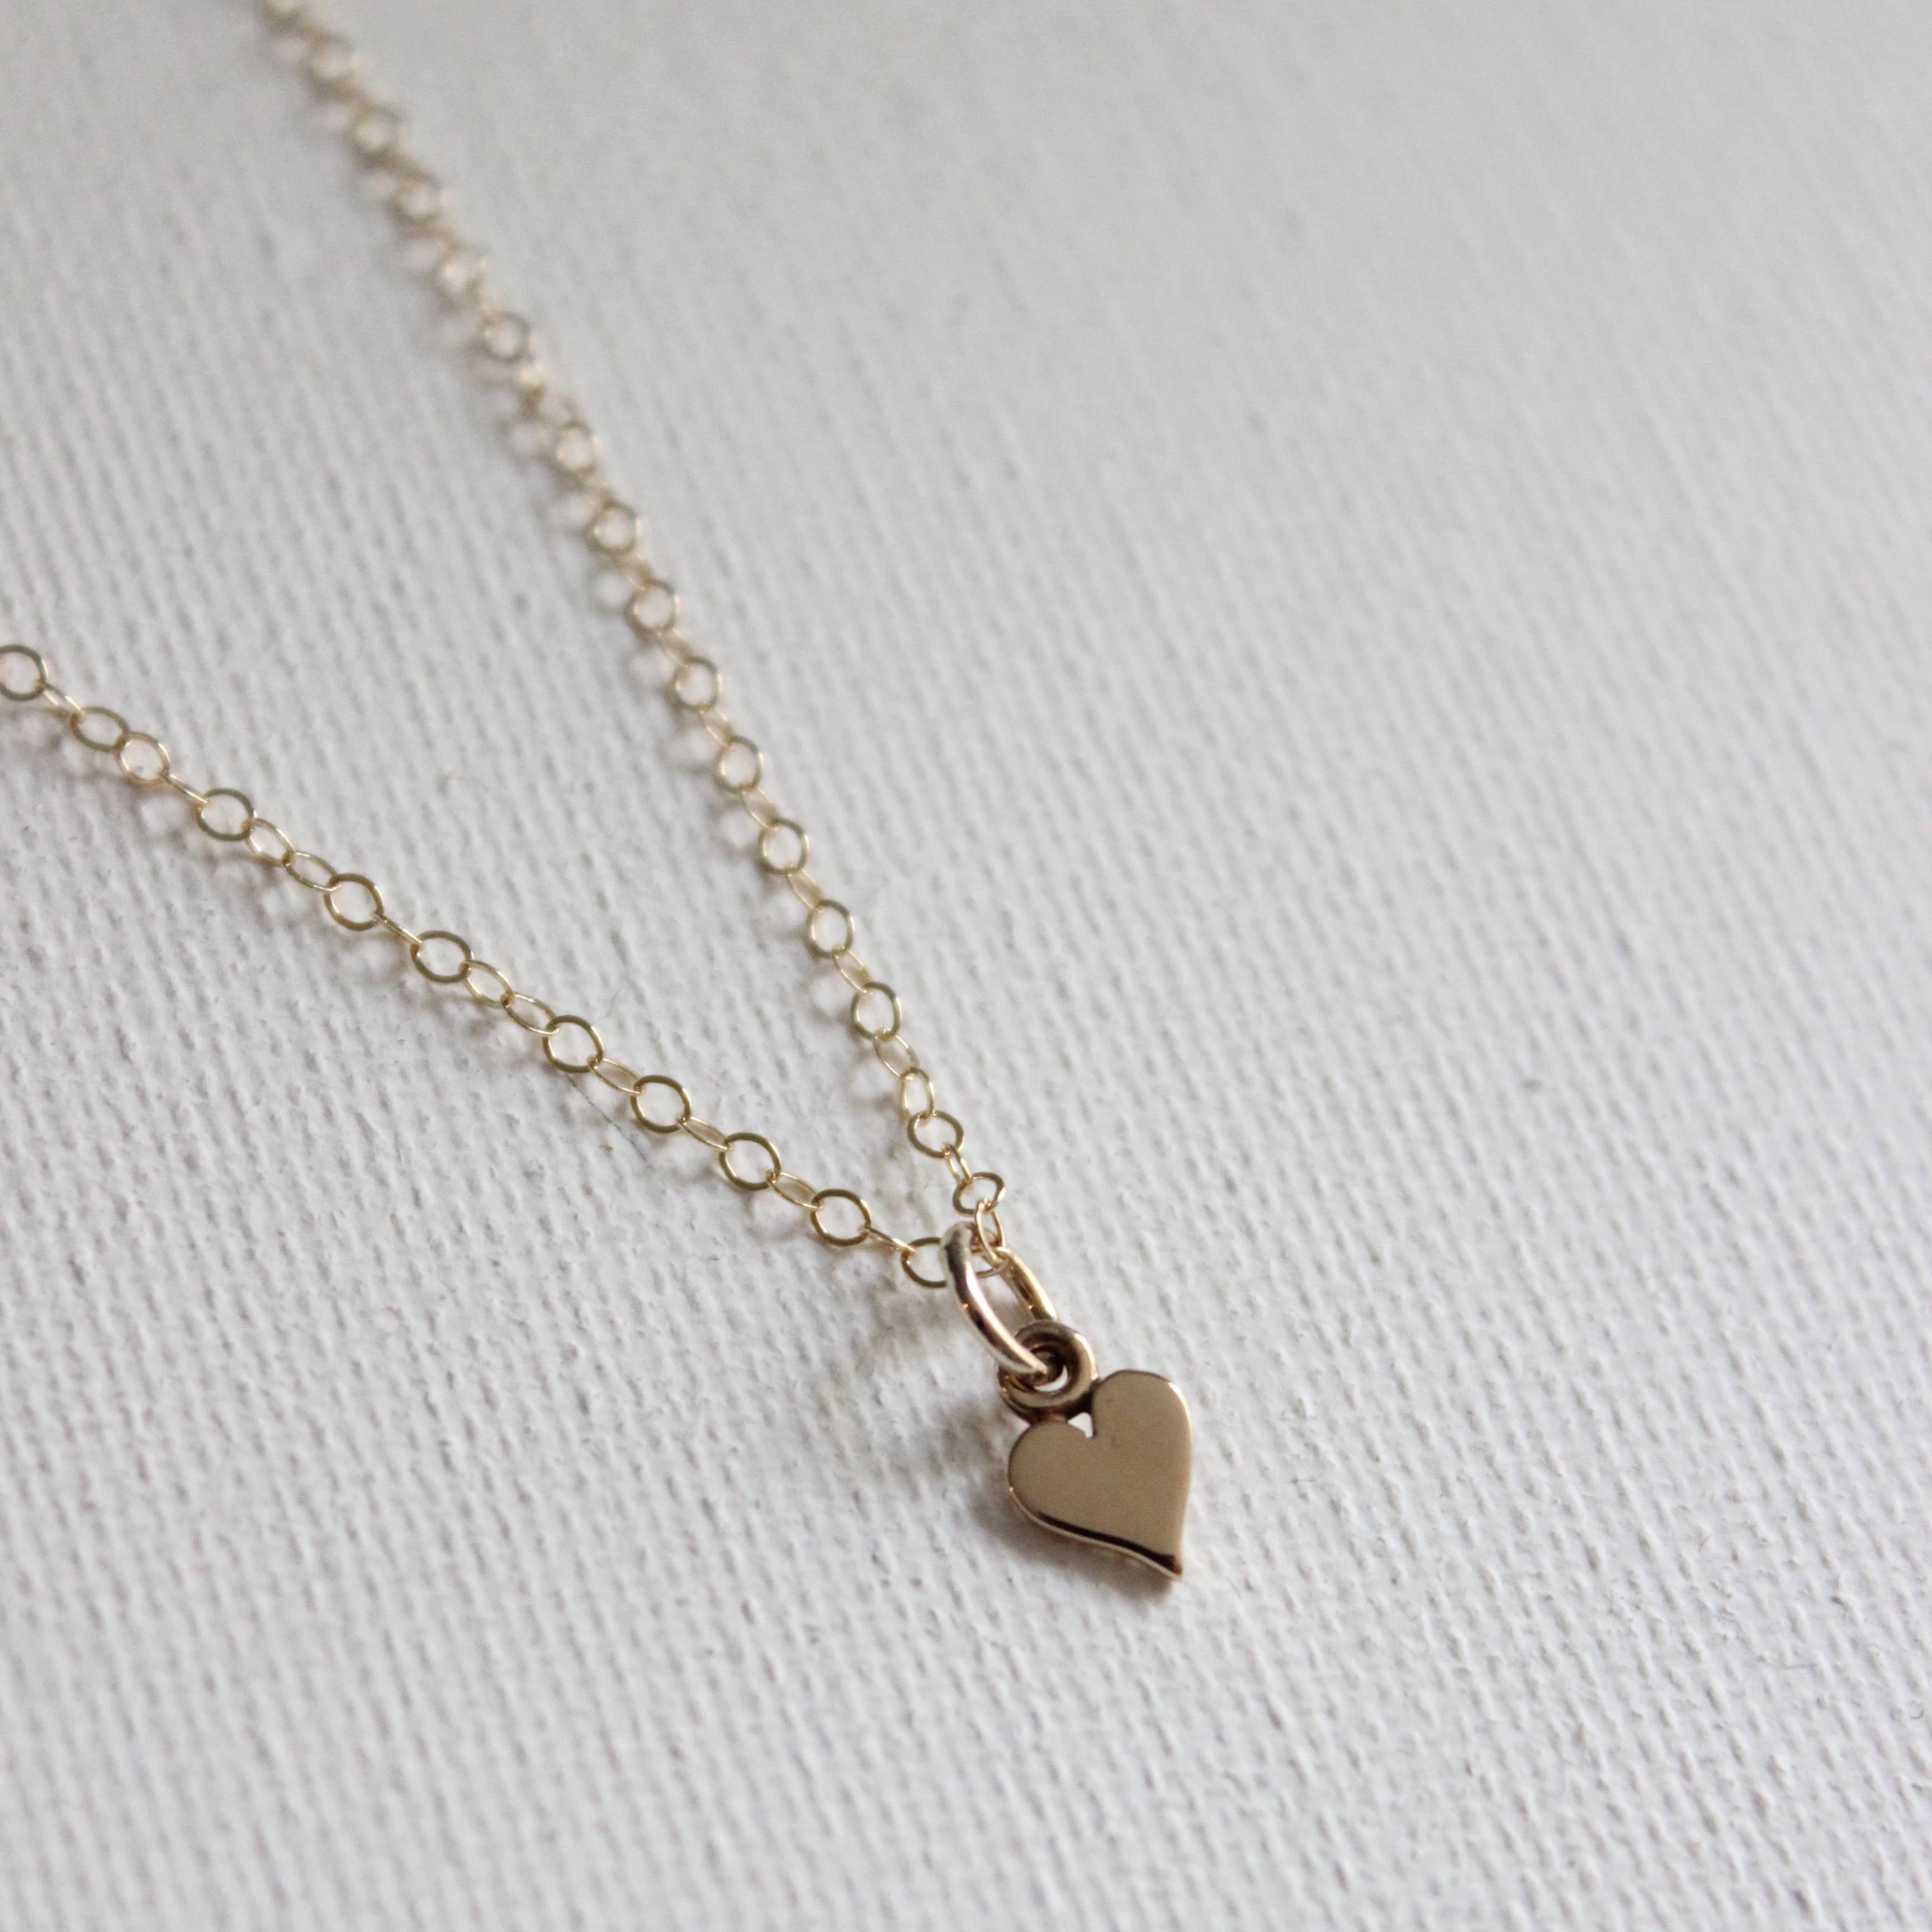 Mini Heart Charm Necklace - Necklace - Katie Waltman Jewelry - MOD&SOUL